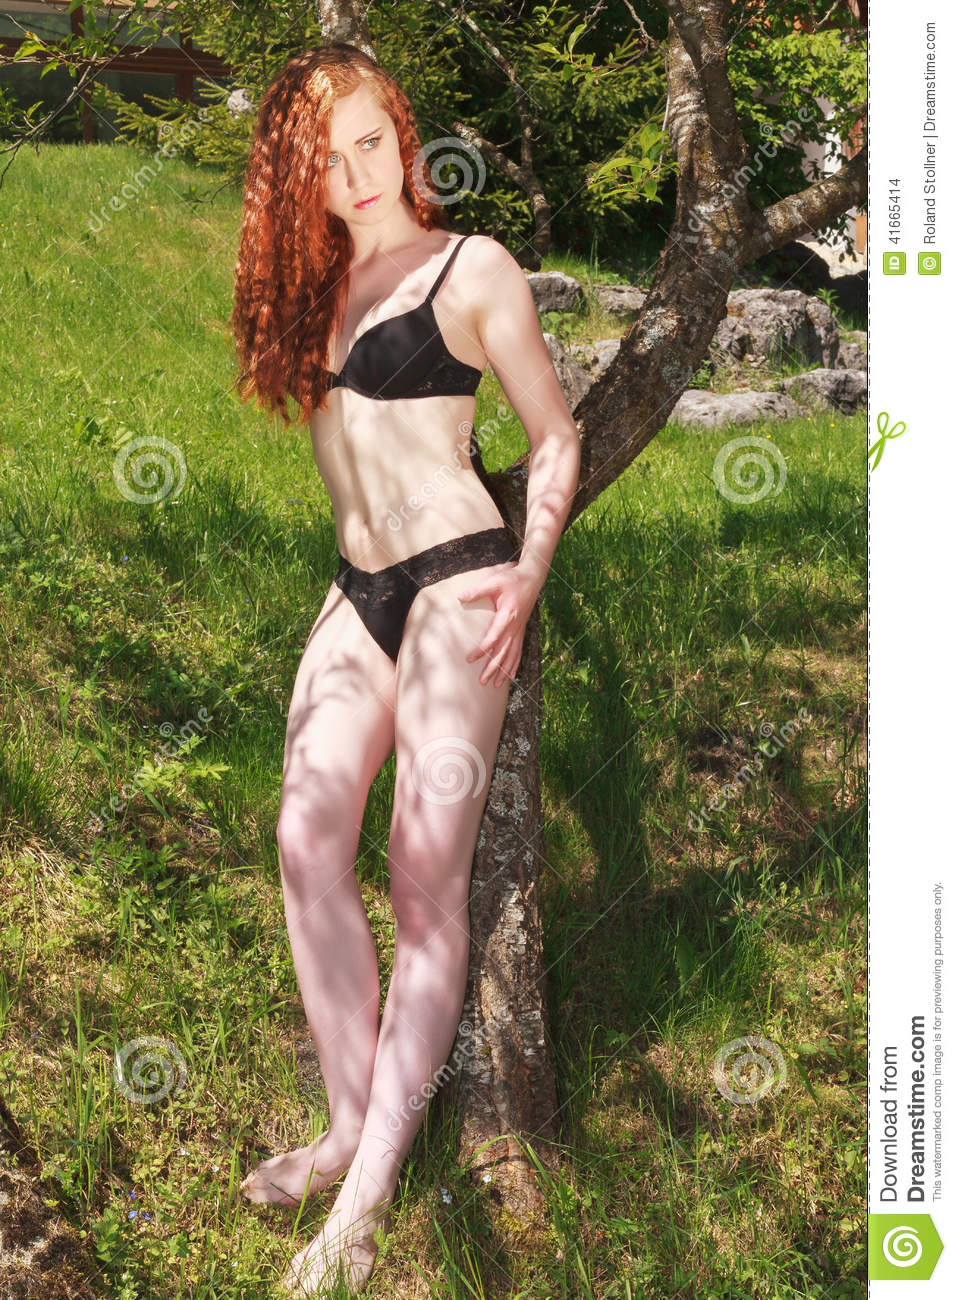 Young whores redhead woman posing dream